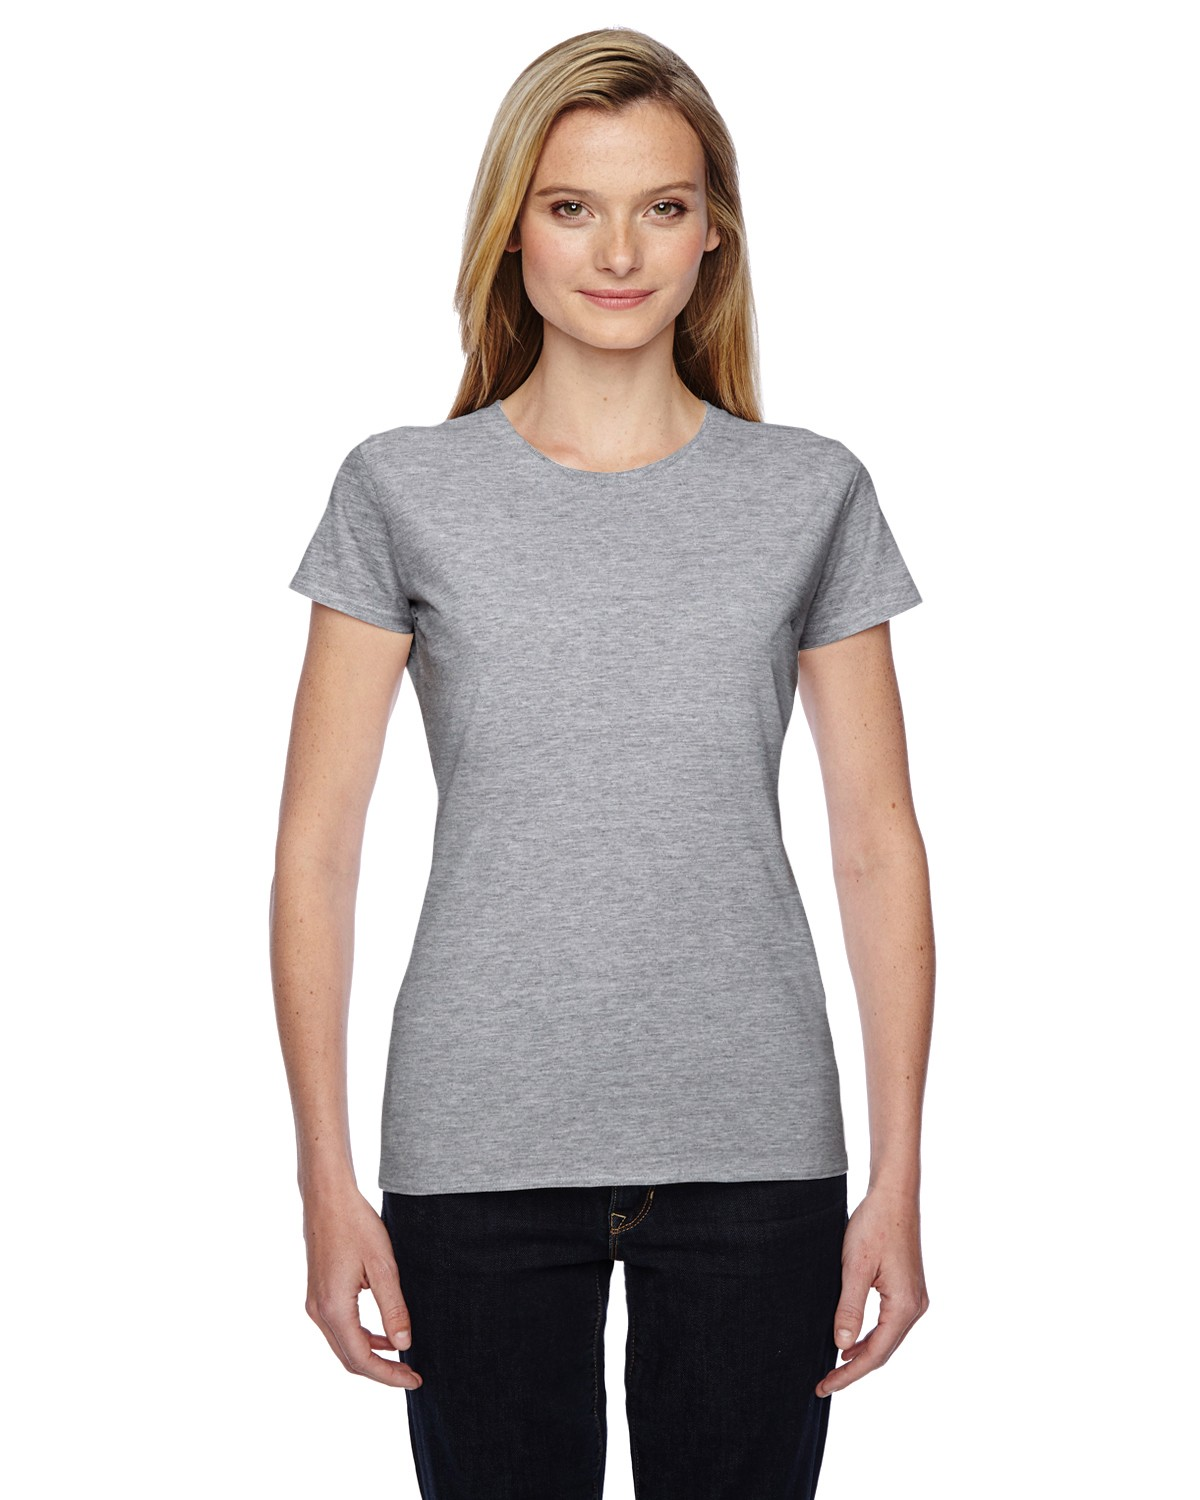 SSFJR Fruit of the Loom ATHLETIC HEATHER